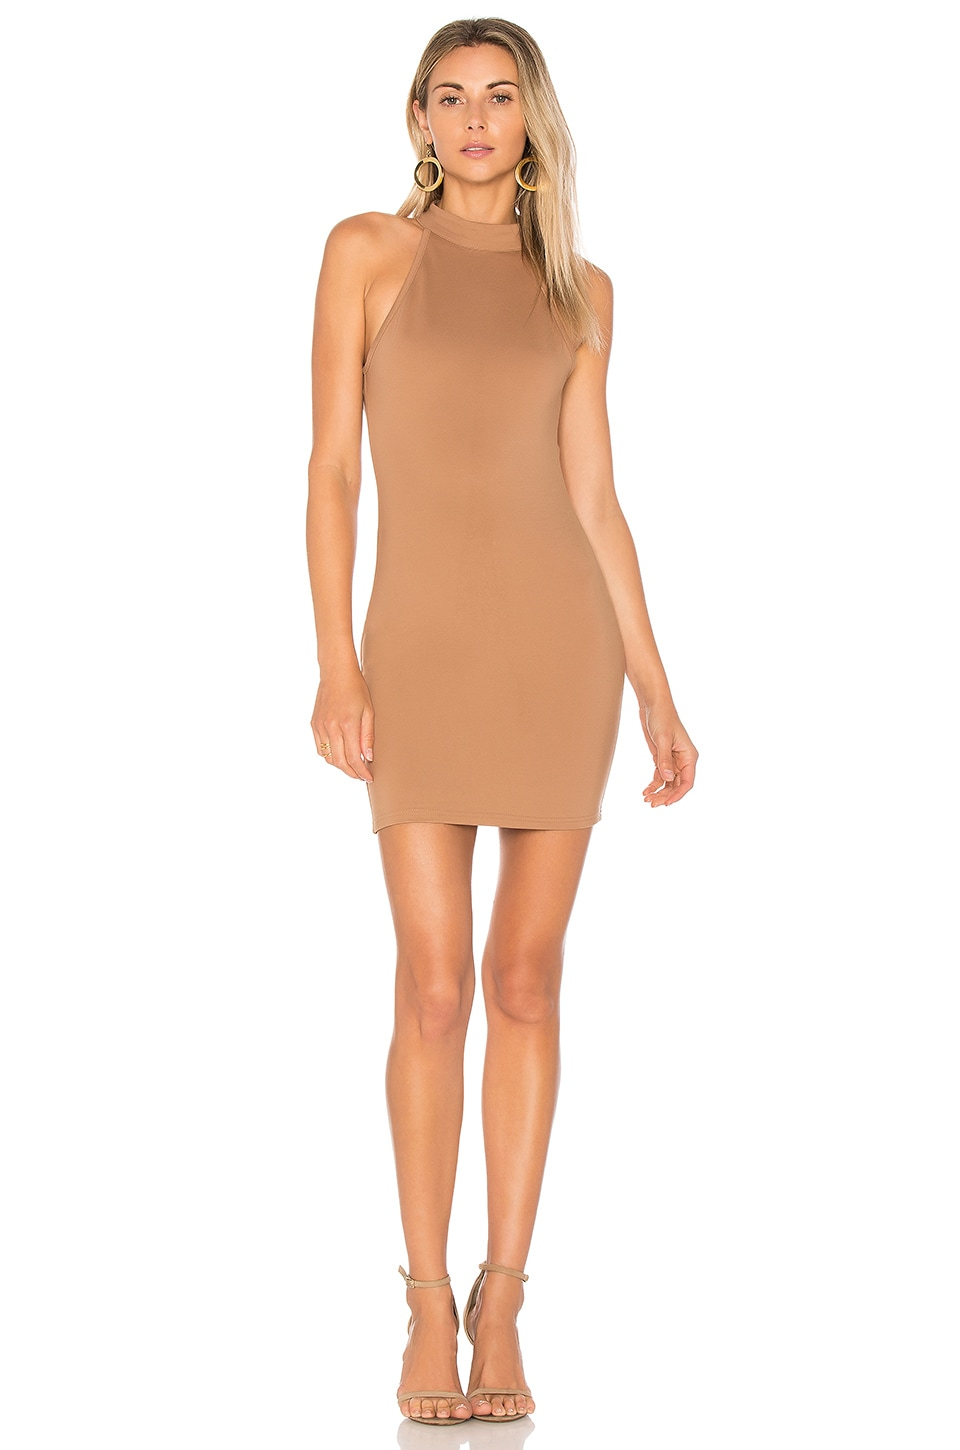 Gracia Halter Bodycon Dress by by the way.